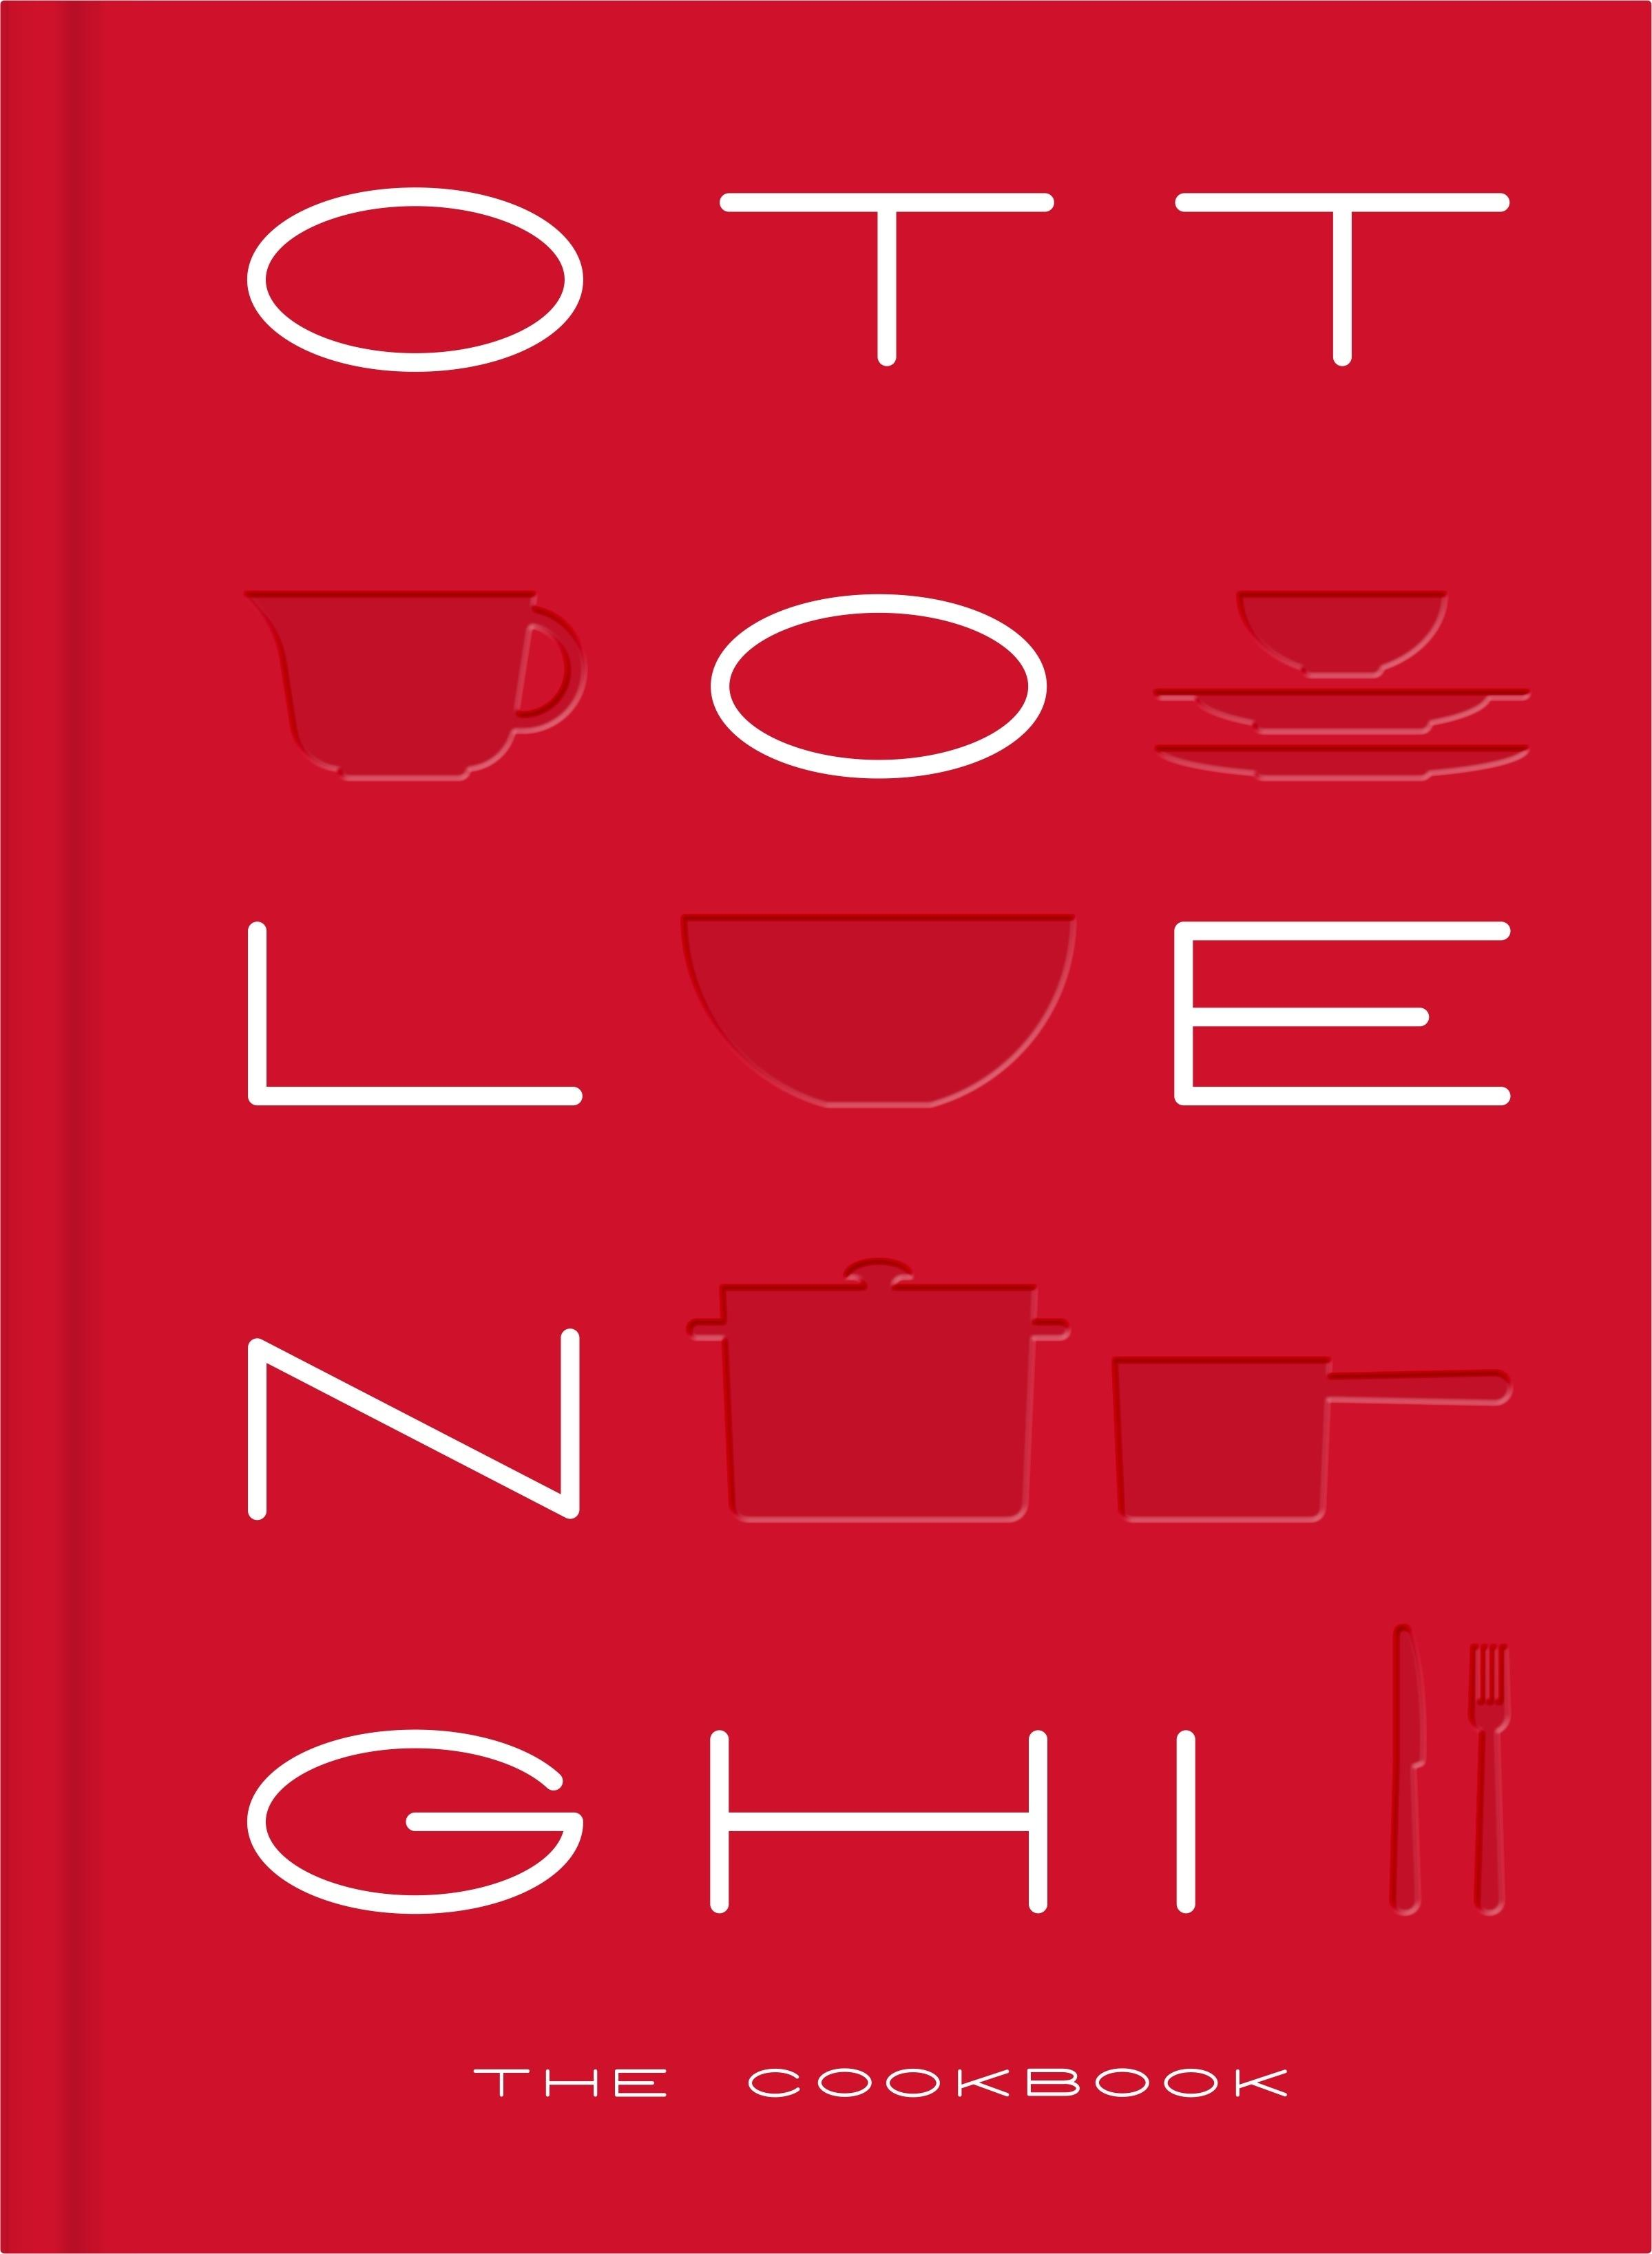 Ottolenghi:TheCookbook